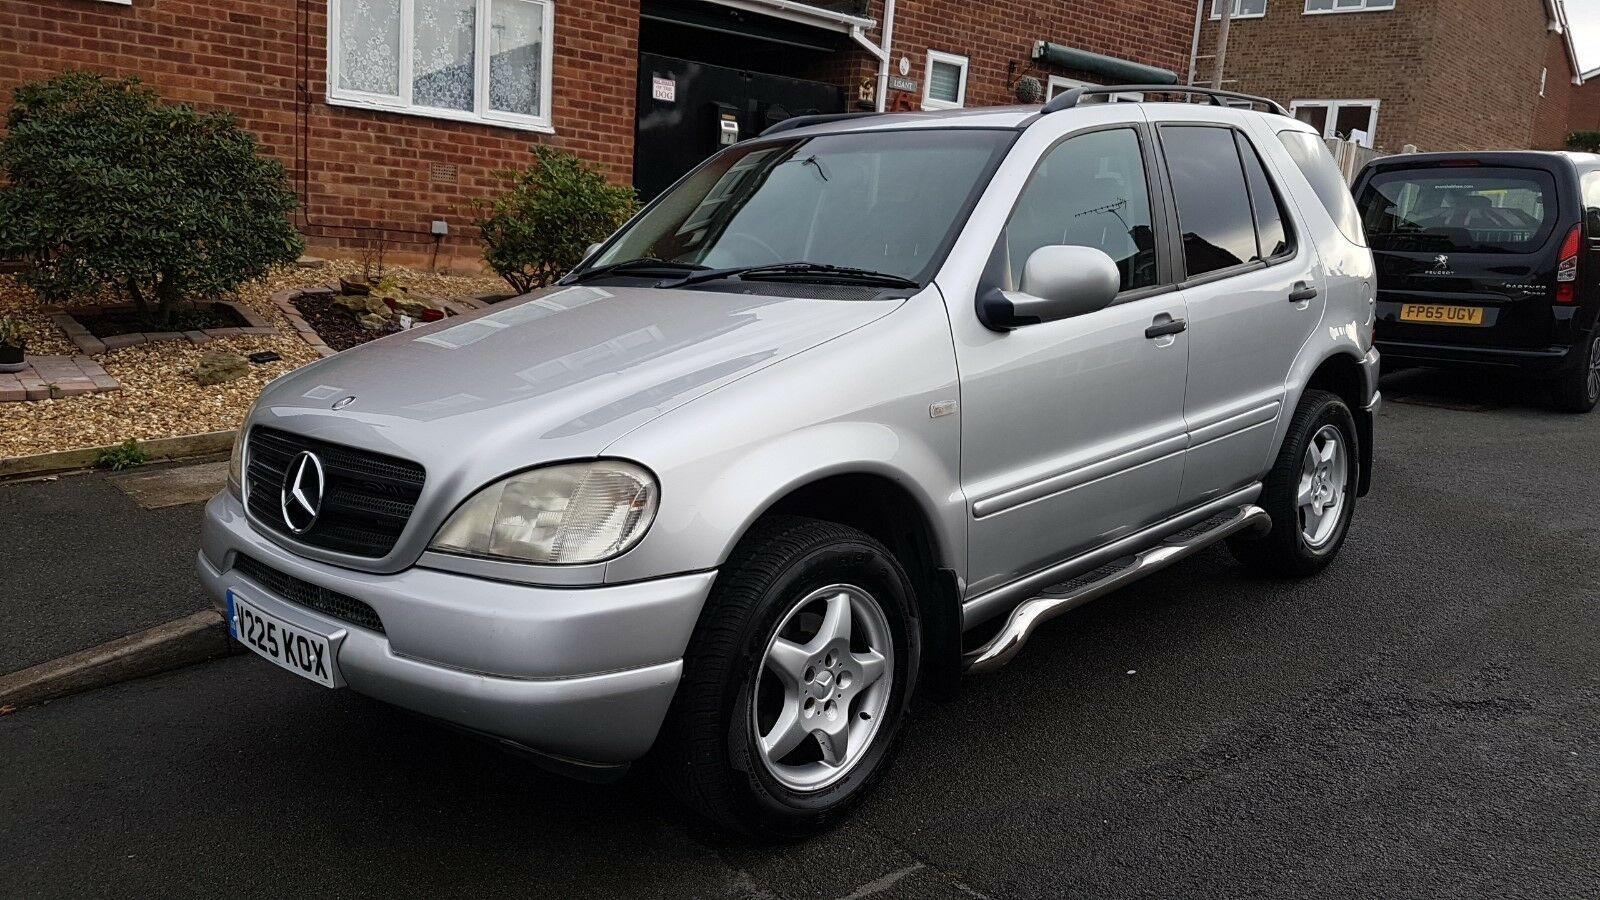 2000 mercedes ml 320 automatic heated leather 4x4 v6 silver fsh 1 picclick uk. Black Bedroom Furniture Sets. Home Design Ideas